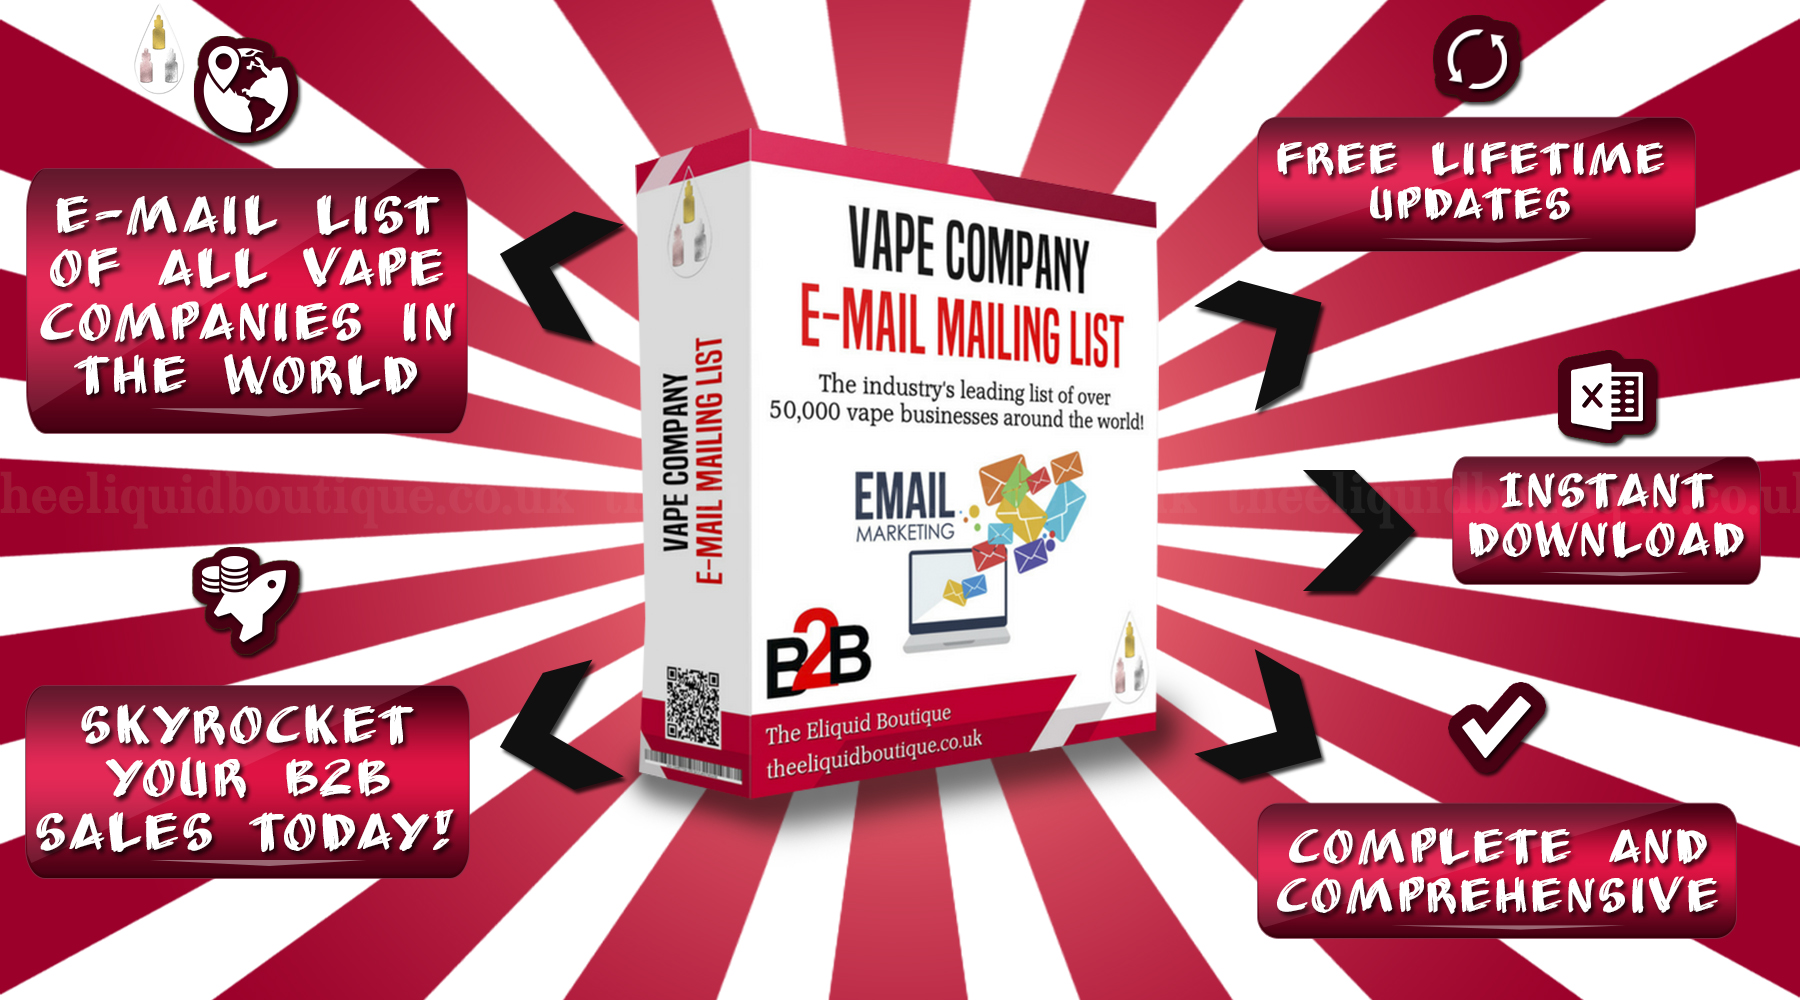 Hooray! The Vape Company Email List Has Undergone Another Update Today! The entire vape company email list has undergone one of many updates this month. The entire email list has been scrubbed from top to bottom using a three level email verification technique to remove all the non-resolving domains (abandoned domains) and defunct email accounts. Around 200 new vape and e-liquid wholesaler and distributor emails were added.  Why Use Our Vape Company Emails? Our vape company emails encompass virtually all the vape companies from all over the world including vape shops (online and brick-and-mortar), vape and e-juice wholesalers and distributors, vape event organisers, vape blogs, e-liquid brands, vape hardware manufacturers and much more. Our email list of vape companies is ideal for newsletter and email campaigns. Simply load up all the emails into your newsletter provider or email list, draft your message and hit send. The vape company emails will connect you with almost all vape companies in the world in a flash. Our vape email list is being used by hundreds of e-liquid brands, vape wholesalers and other vape companies interested in selling their products or services to other vape businesses.  Vape Shop Email List - 7 December 2018 Update  Here's What You Will Get By purchasing our vape company email list, you will receive FREE regular updates which will be delivered directly to your inbox by our system. As you will have undoubtedly noticed, our vape company email list is updates very regularly to ensure that you have the latest and working vape company emails at hand. Say goodbye to stale and outdated email lists and start focusing on selling your products without wasting your precious time on compiling your own list of vape companies.  How we collect vape company emails All of our vape company emails are collected from the public domains and vape exhibitions by our multi-lingual team. There are many vape stores that are simply impossible to find due to them being